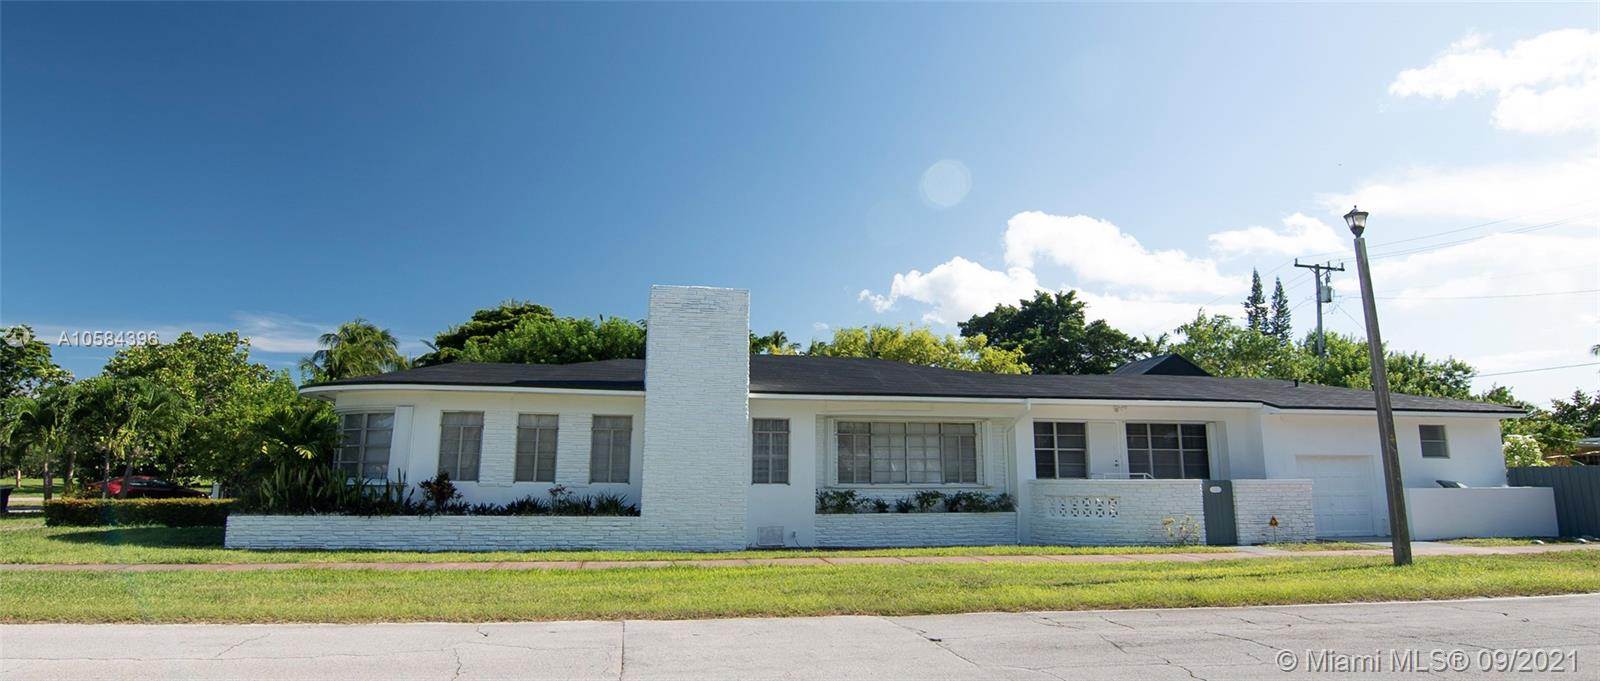 2502  Prairie Ave  For Sale A10584396, FL